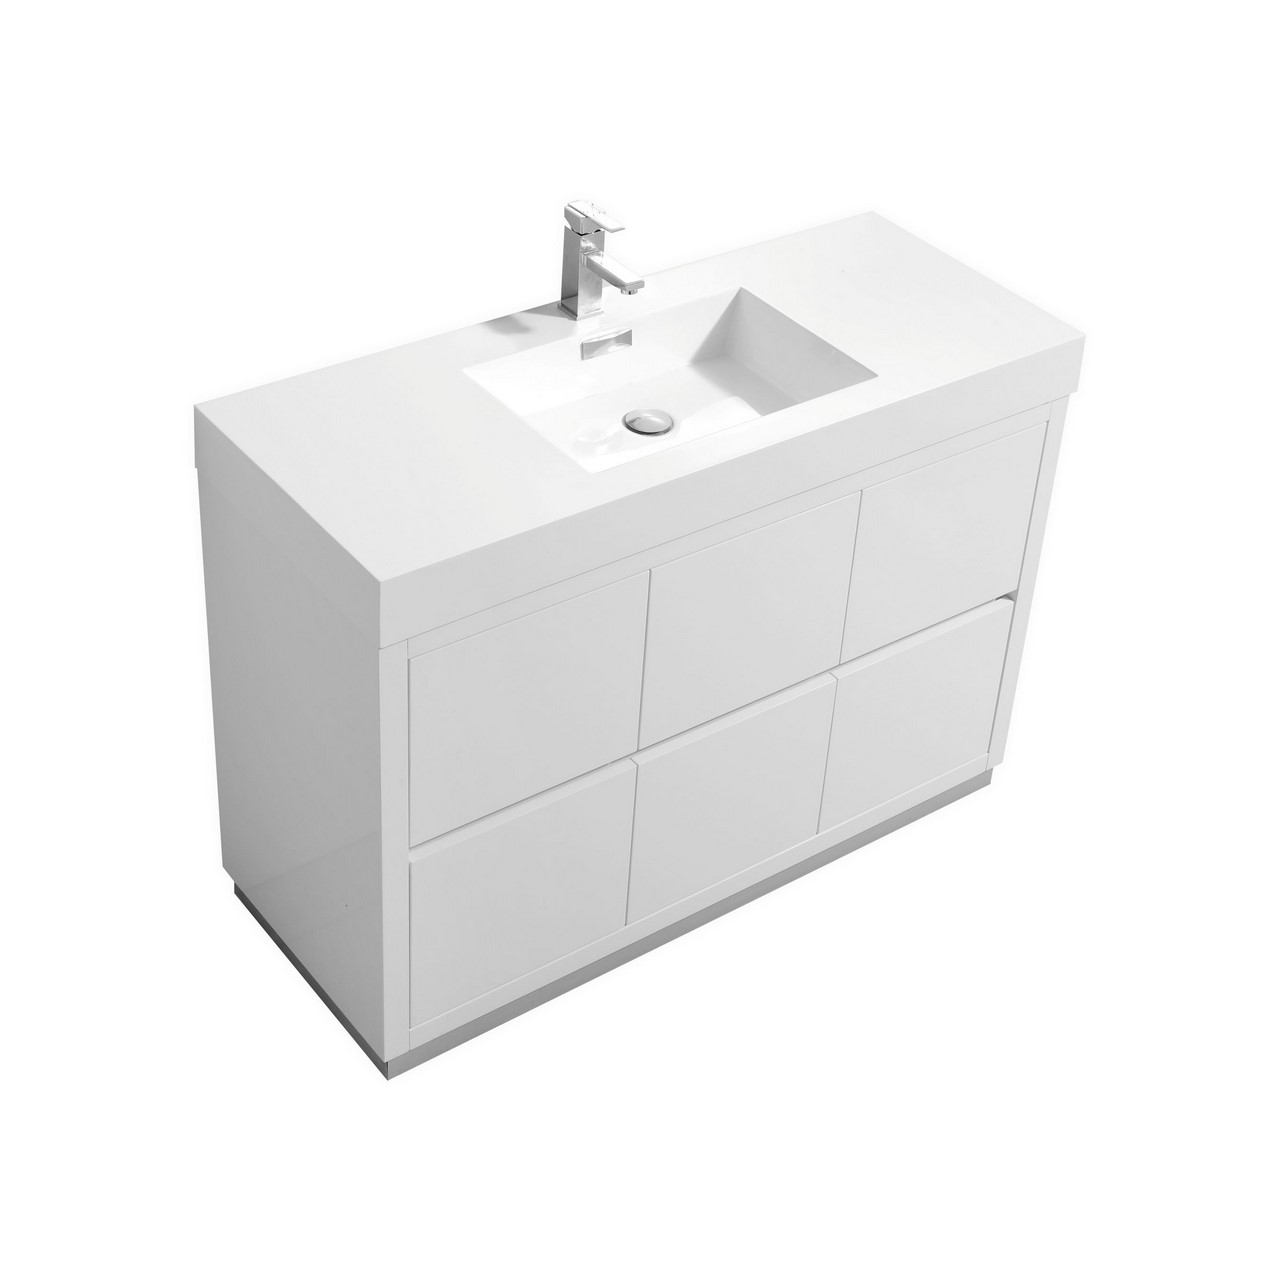 Bliss 48 High Gloss White Free Standing Modern Bathroom Vanity